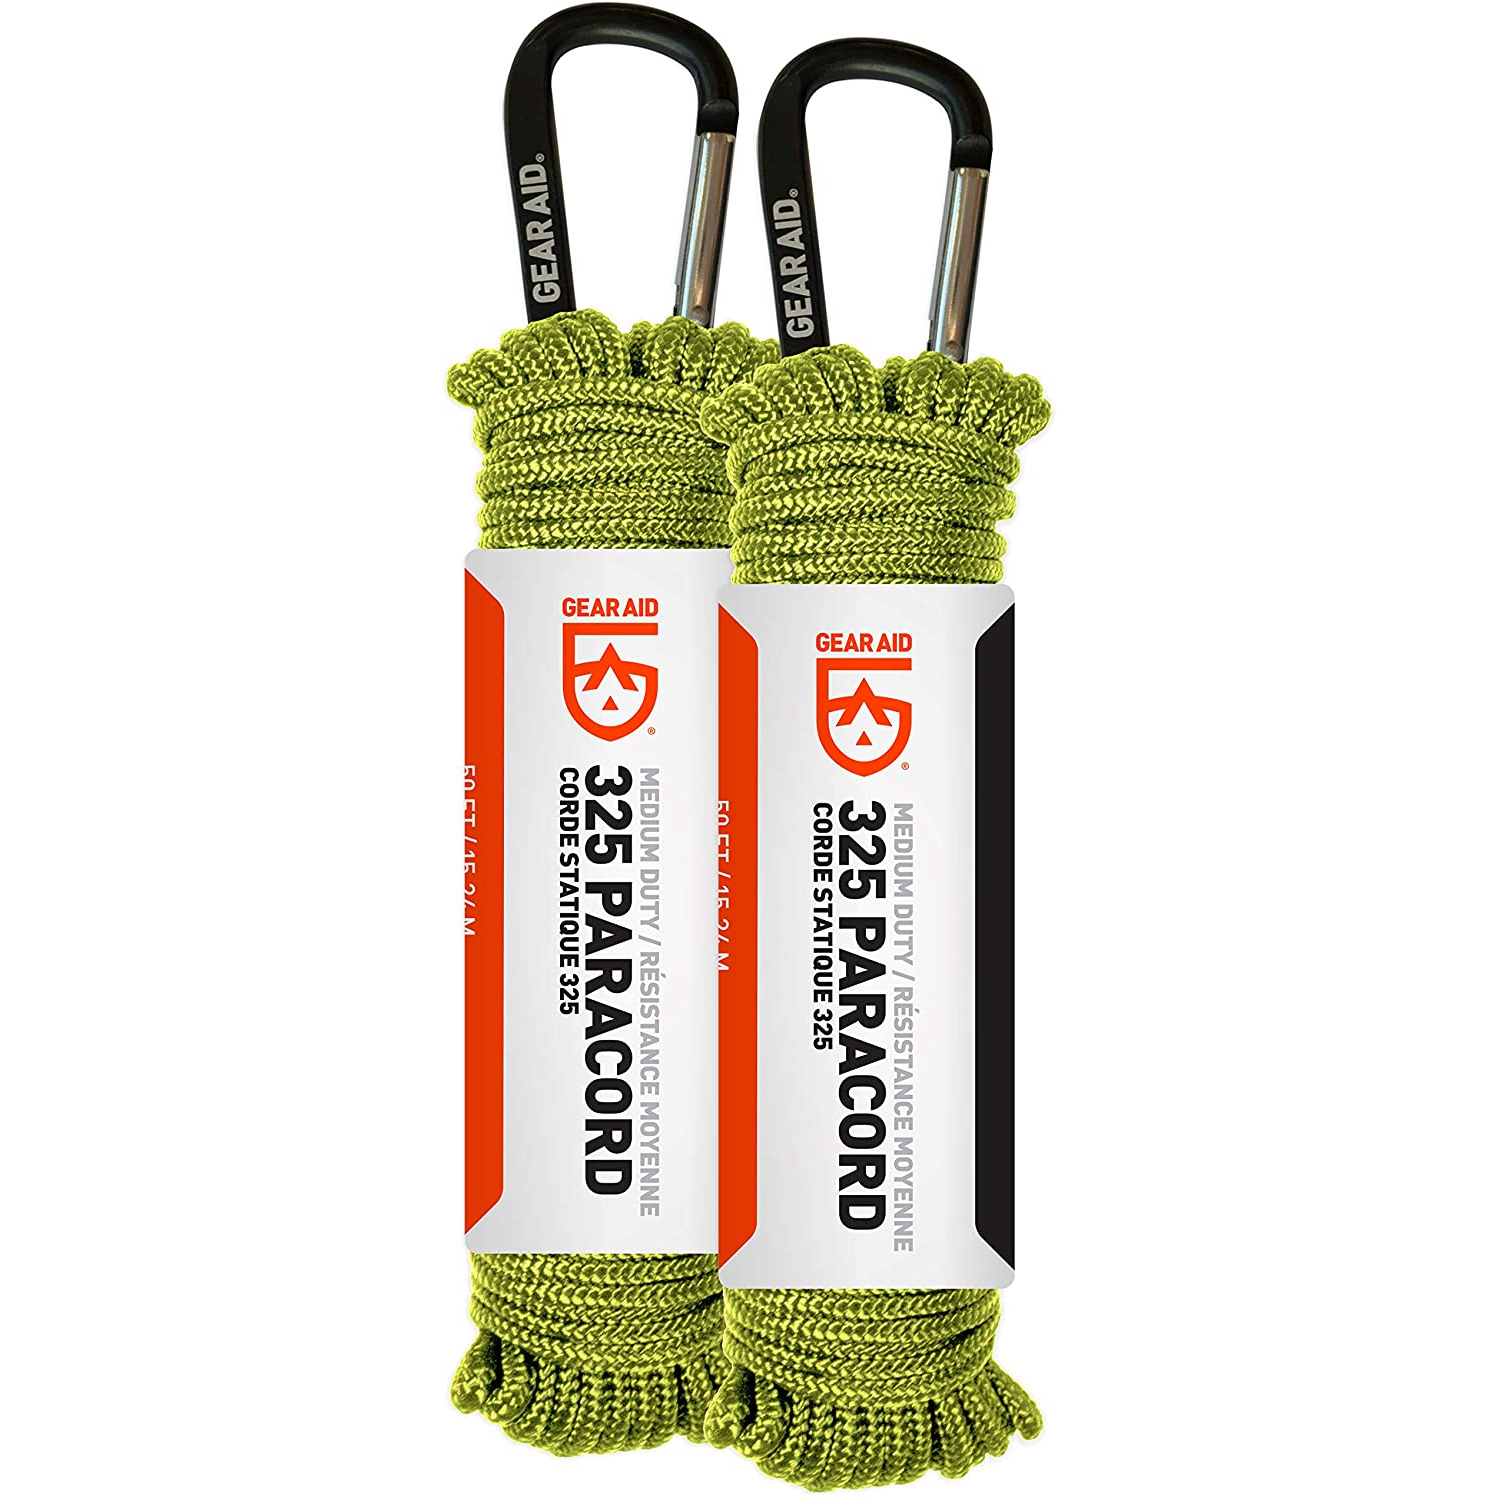 GEAR AID 325 Paracord and Carabiner, Utility Cord for Camping and Hiking, Nav Green, 2-pk